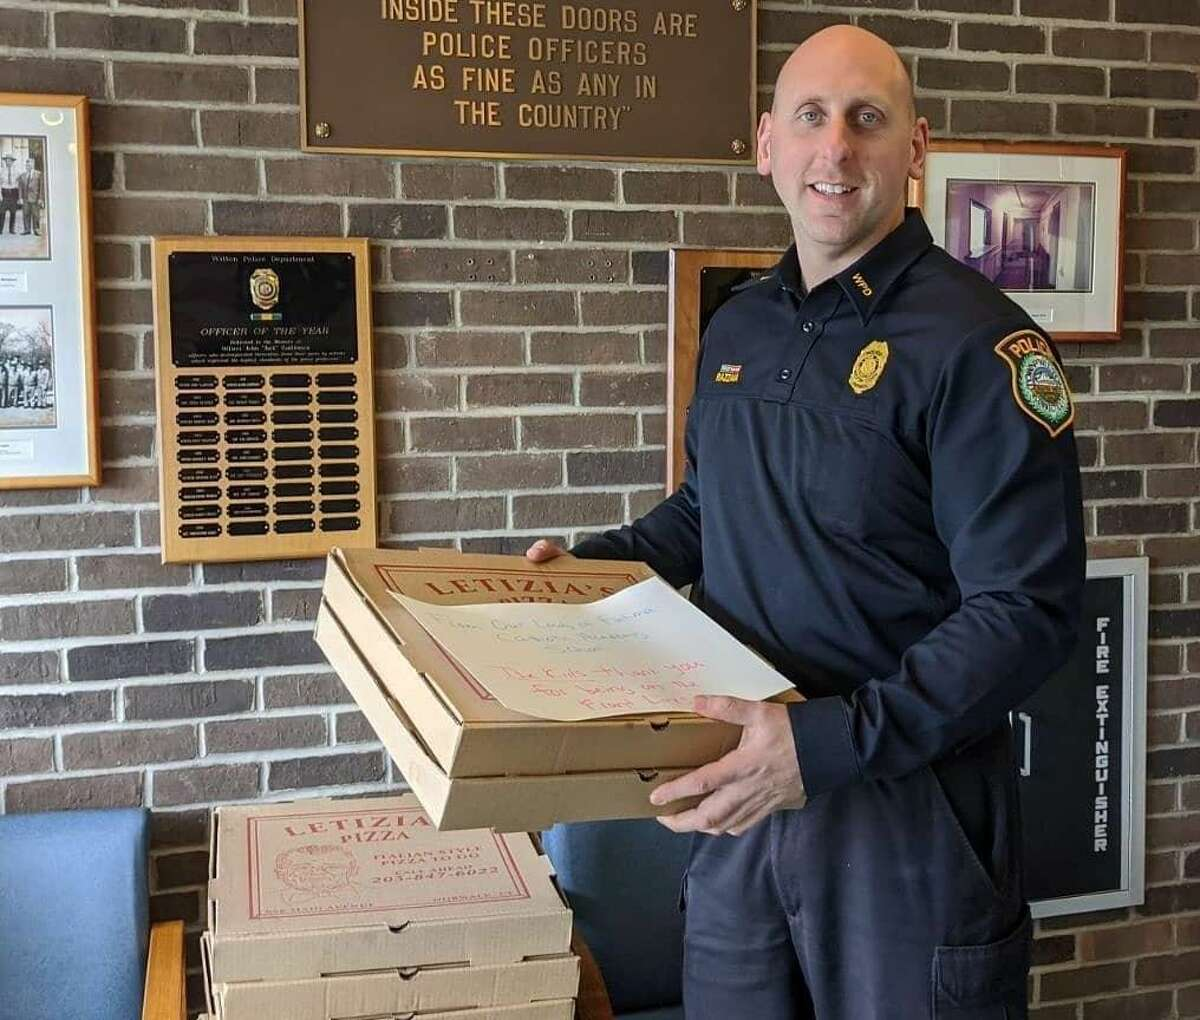 Wilton Police Officer Frank Razzaia accepts a delivery of pizzas on behalf of the department courtesy of students and families of Our Lady of Fatima Catholic Academy in Wilton, Conn. March 2020